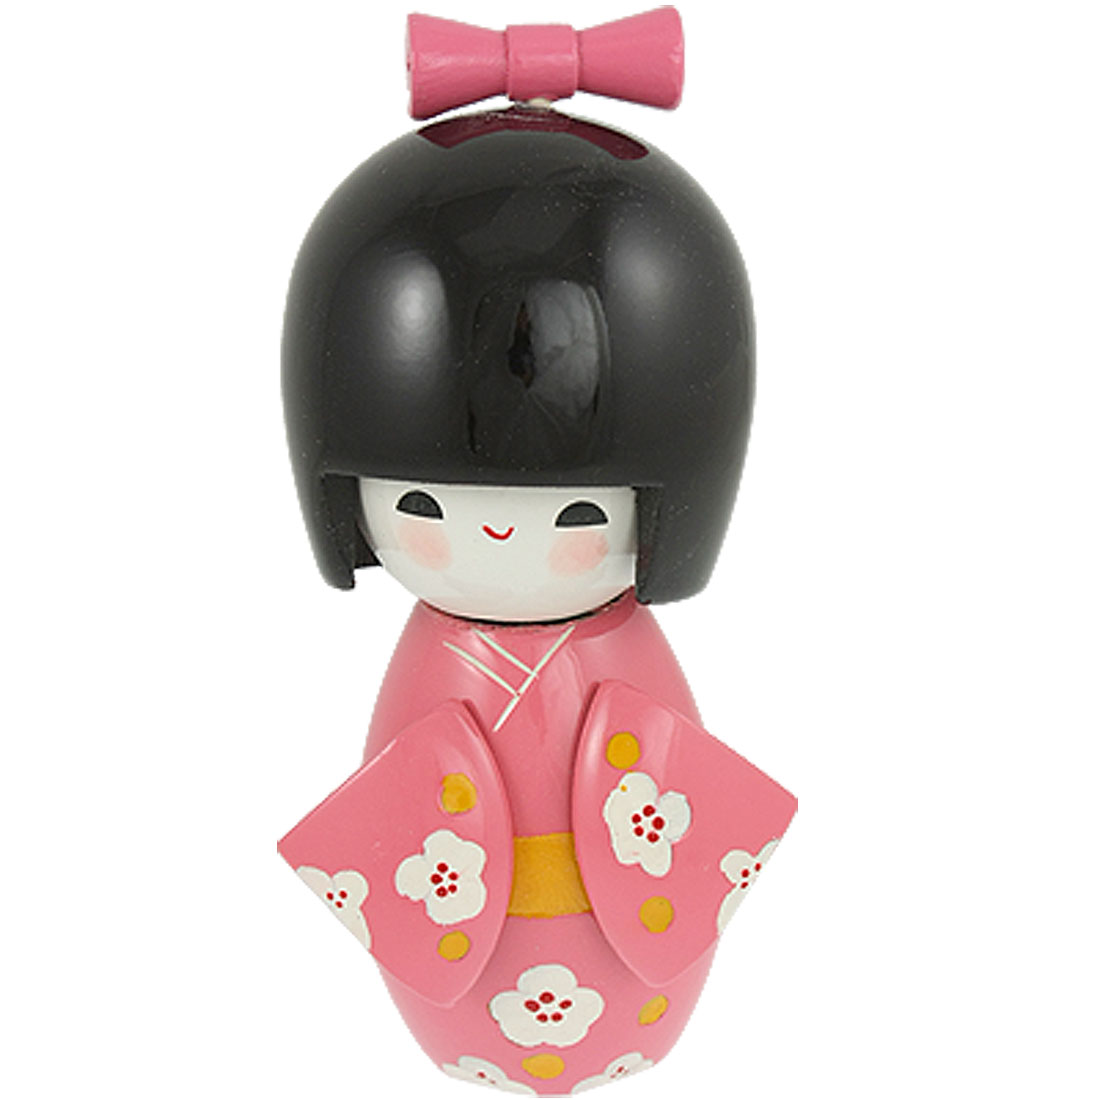 Bowtie Decor Smiling Girl Pink Kimono Japanese Kokeshi Doll Wooden Toy